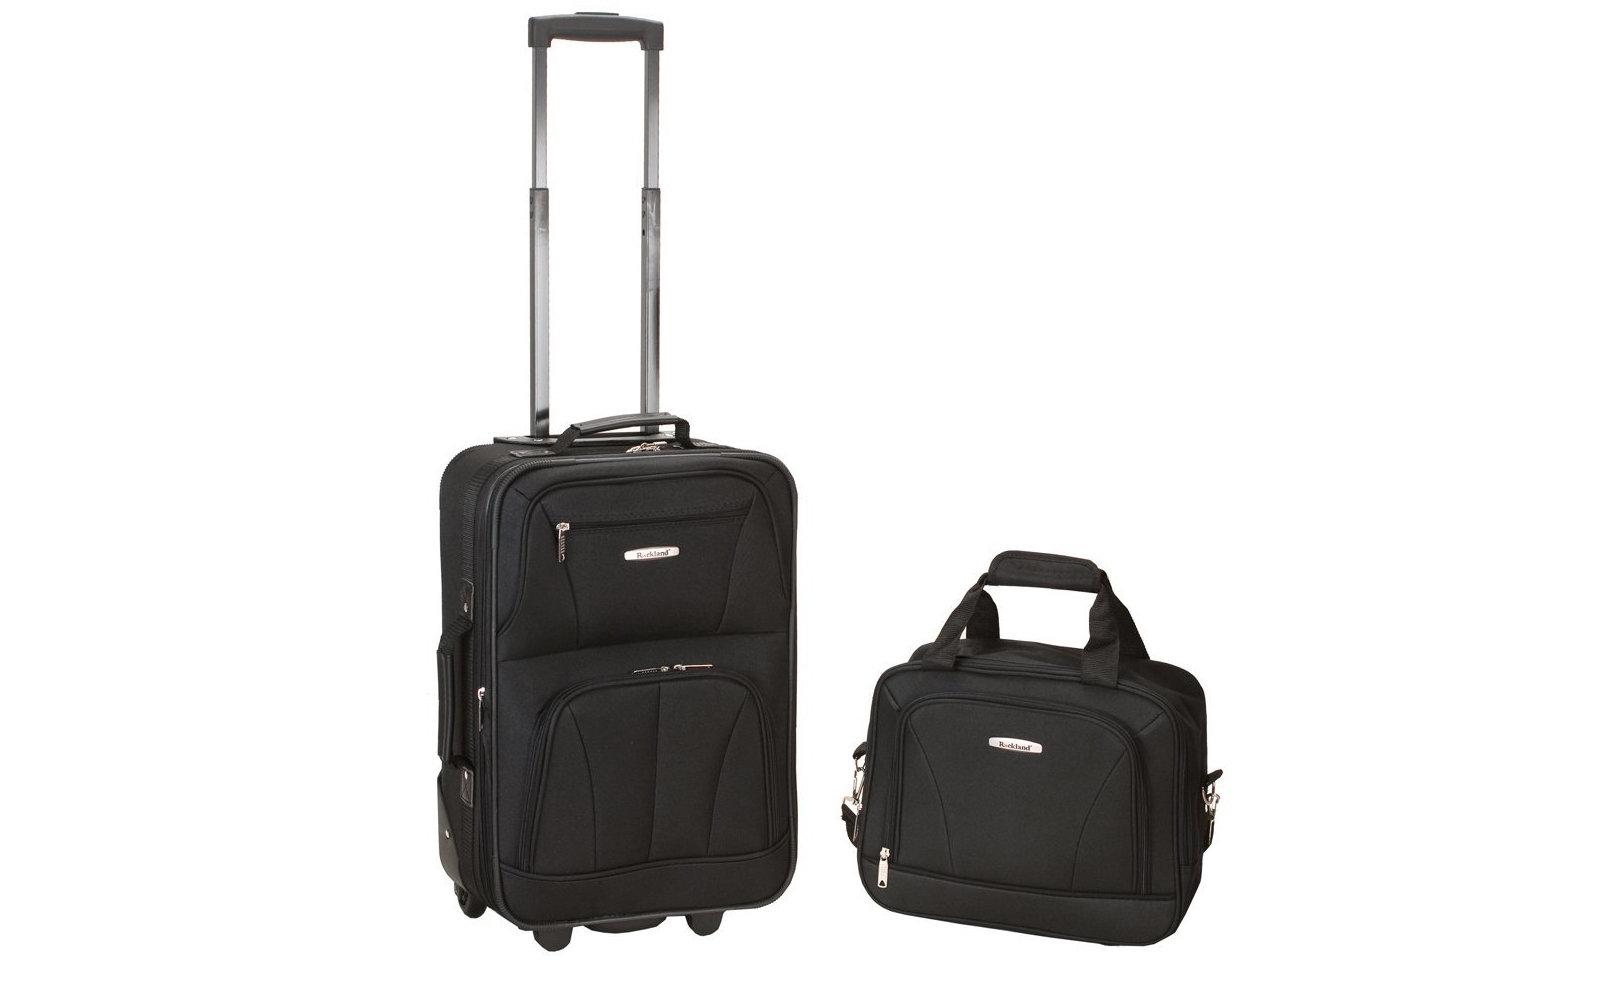 Kids luggage set by Rockland